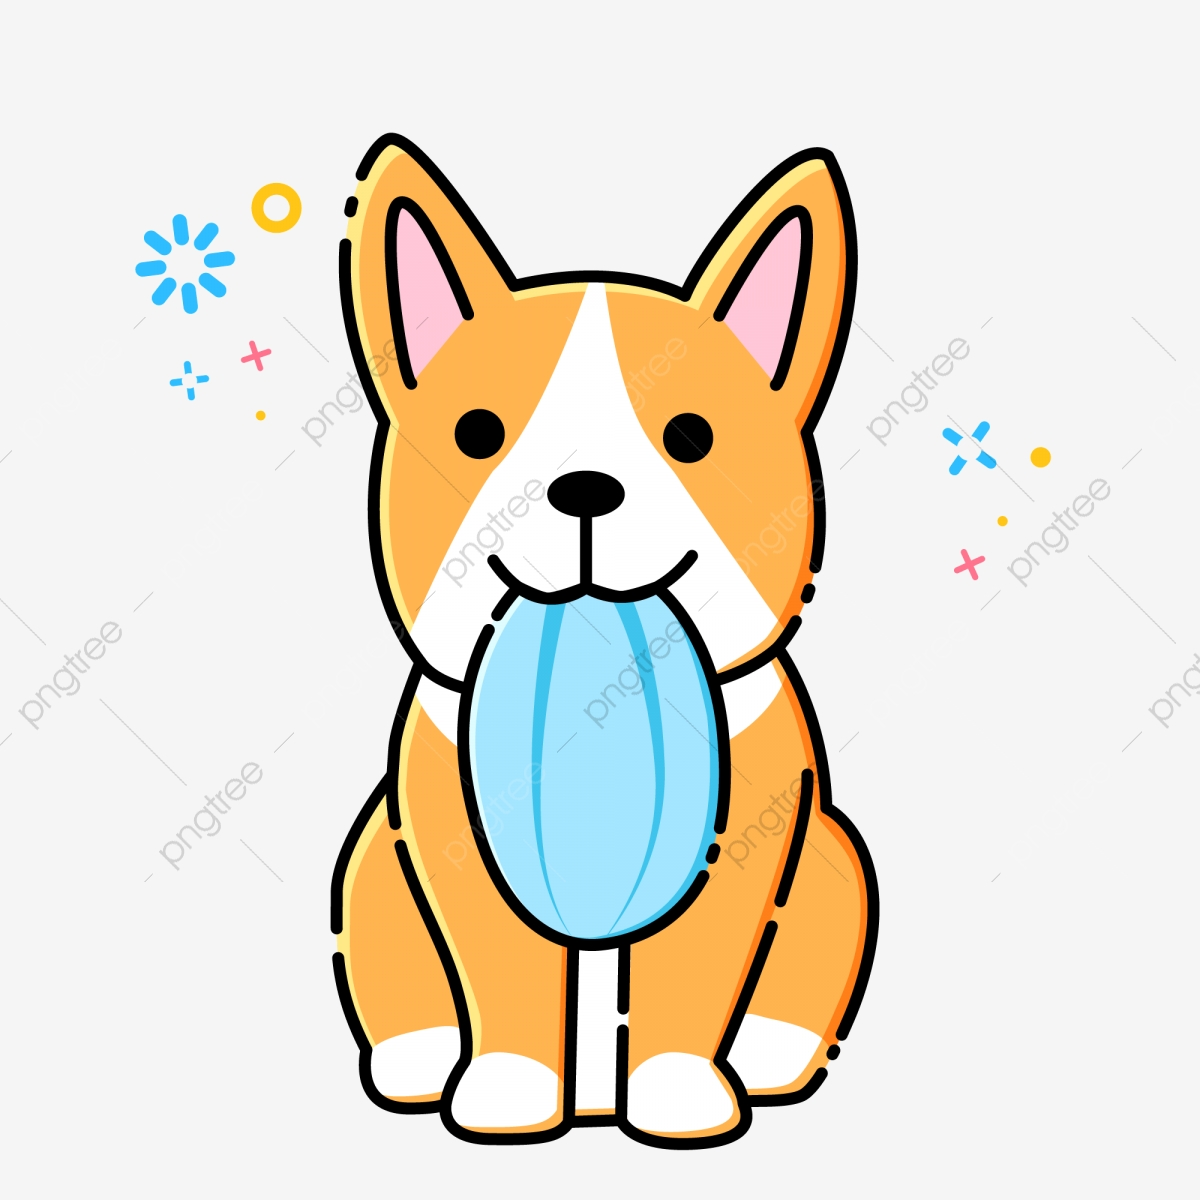 Mbe Style Cartoon Cute Dog Keji Animal Material Mbe Cute Dog Cartoon Dog Png And Vector With Transparent Background For Free Download